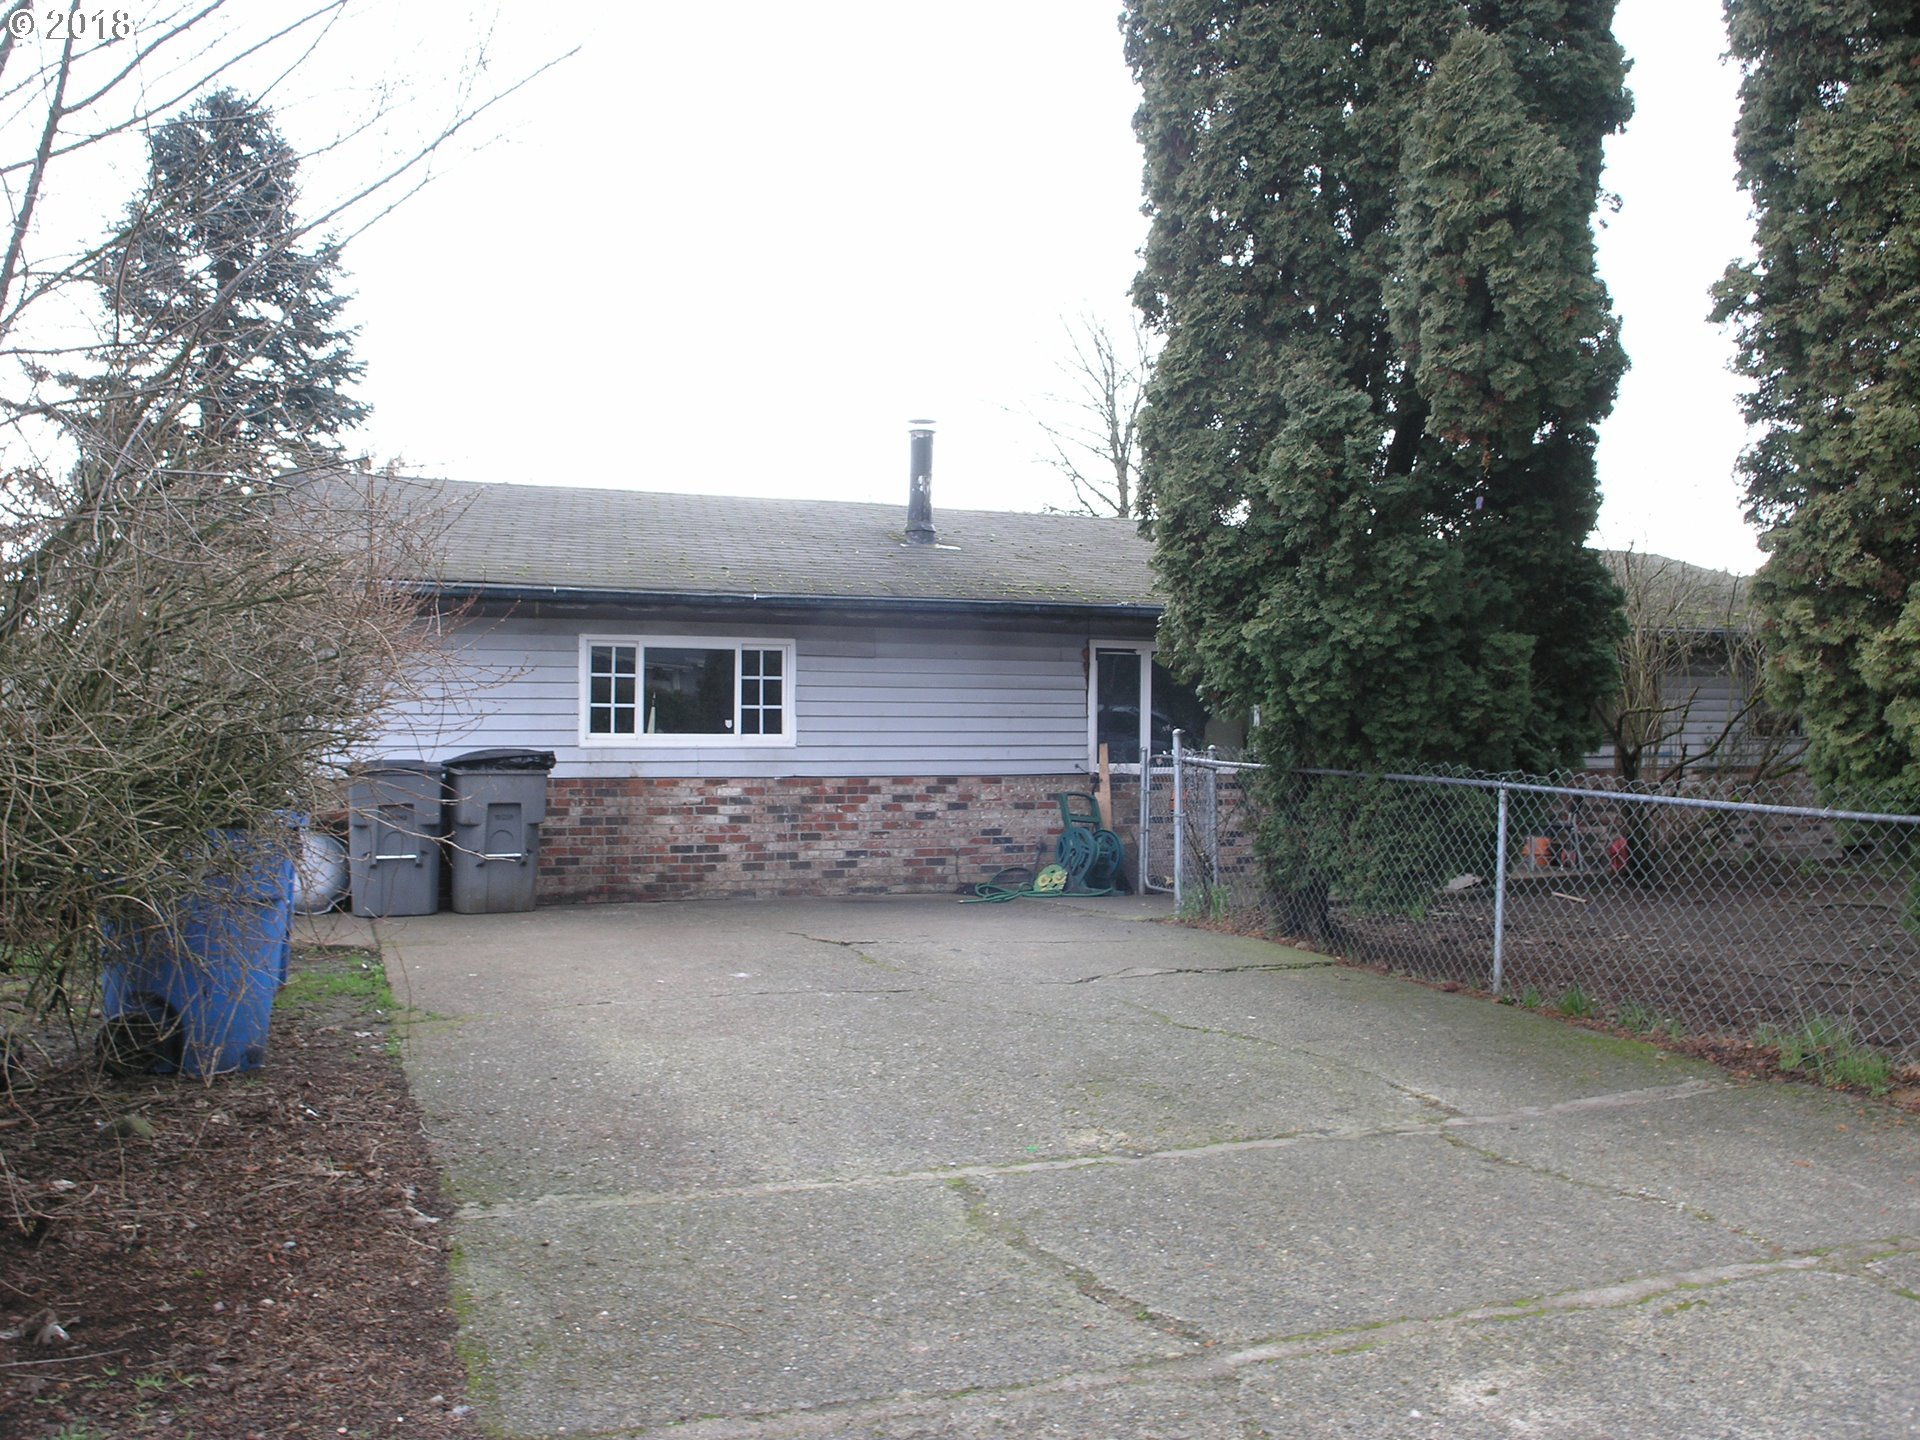 1508 sq. ft 3 bedrooms 2 bathrooms  House ,Vancouver, WA